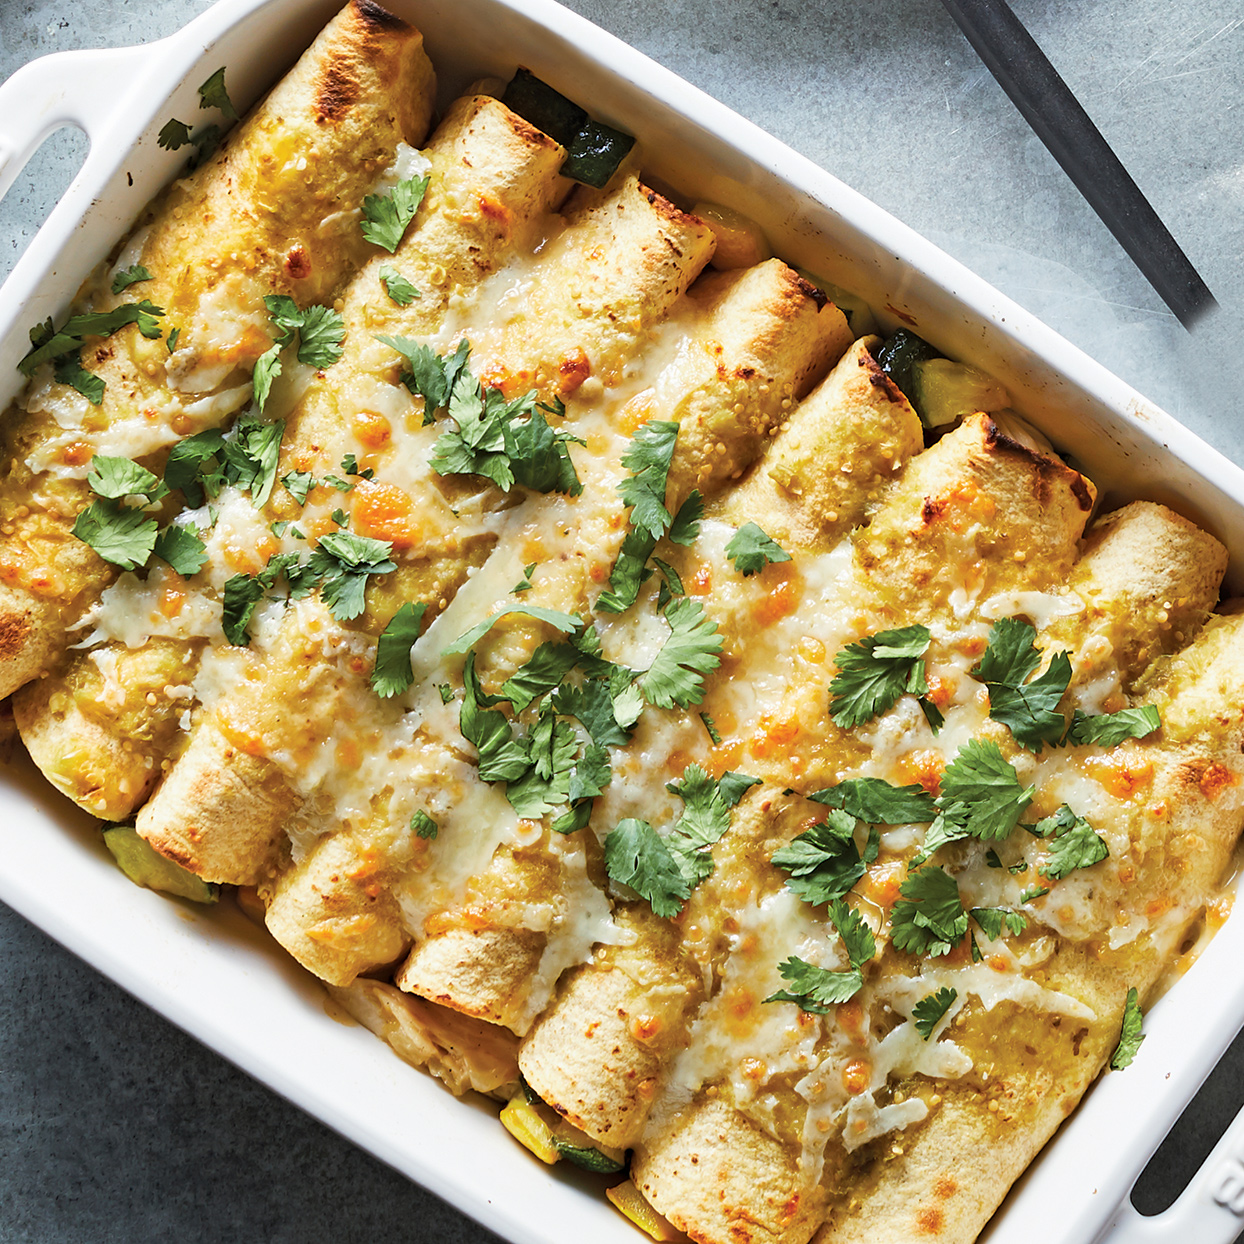 A dish of baked enchiladas with green herbs on top